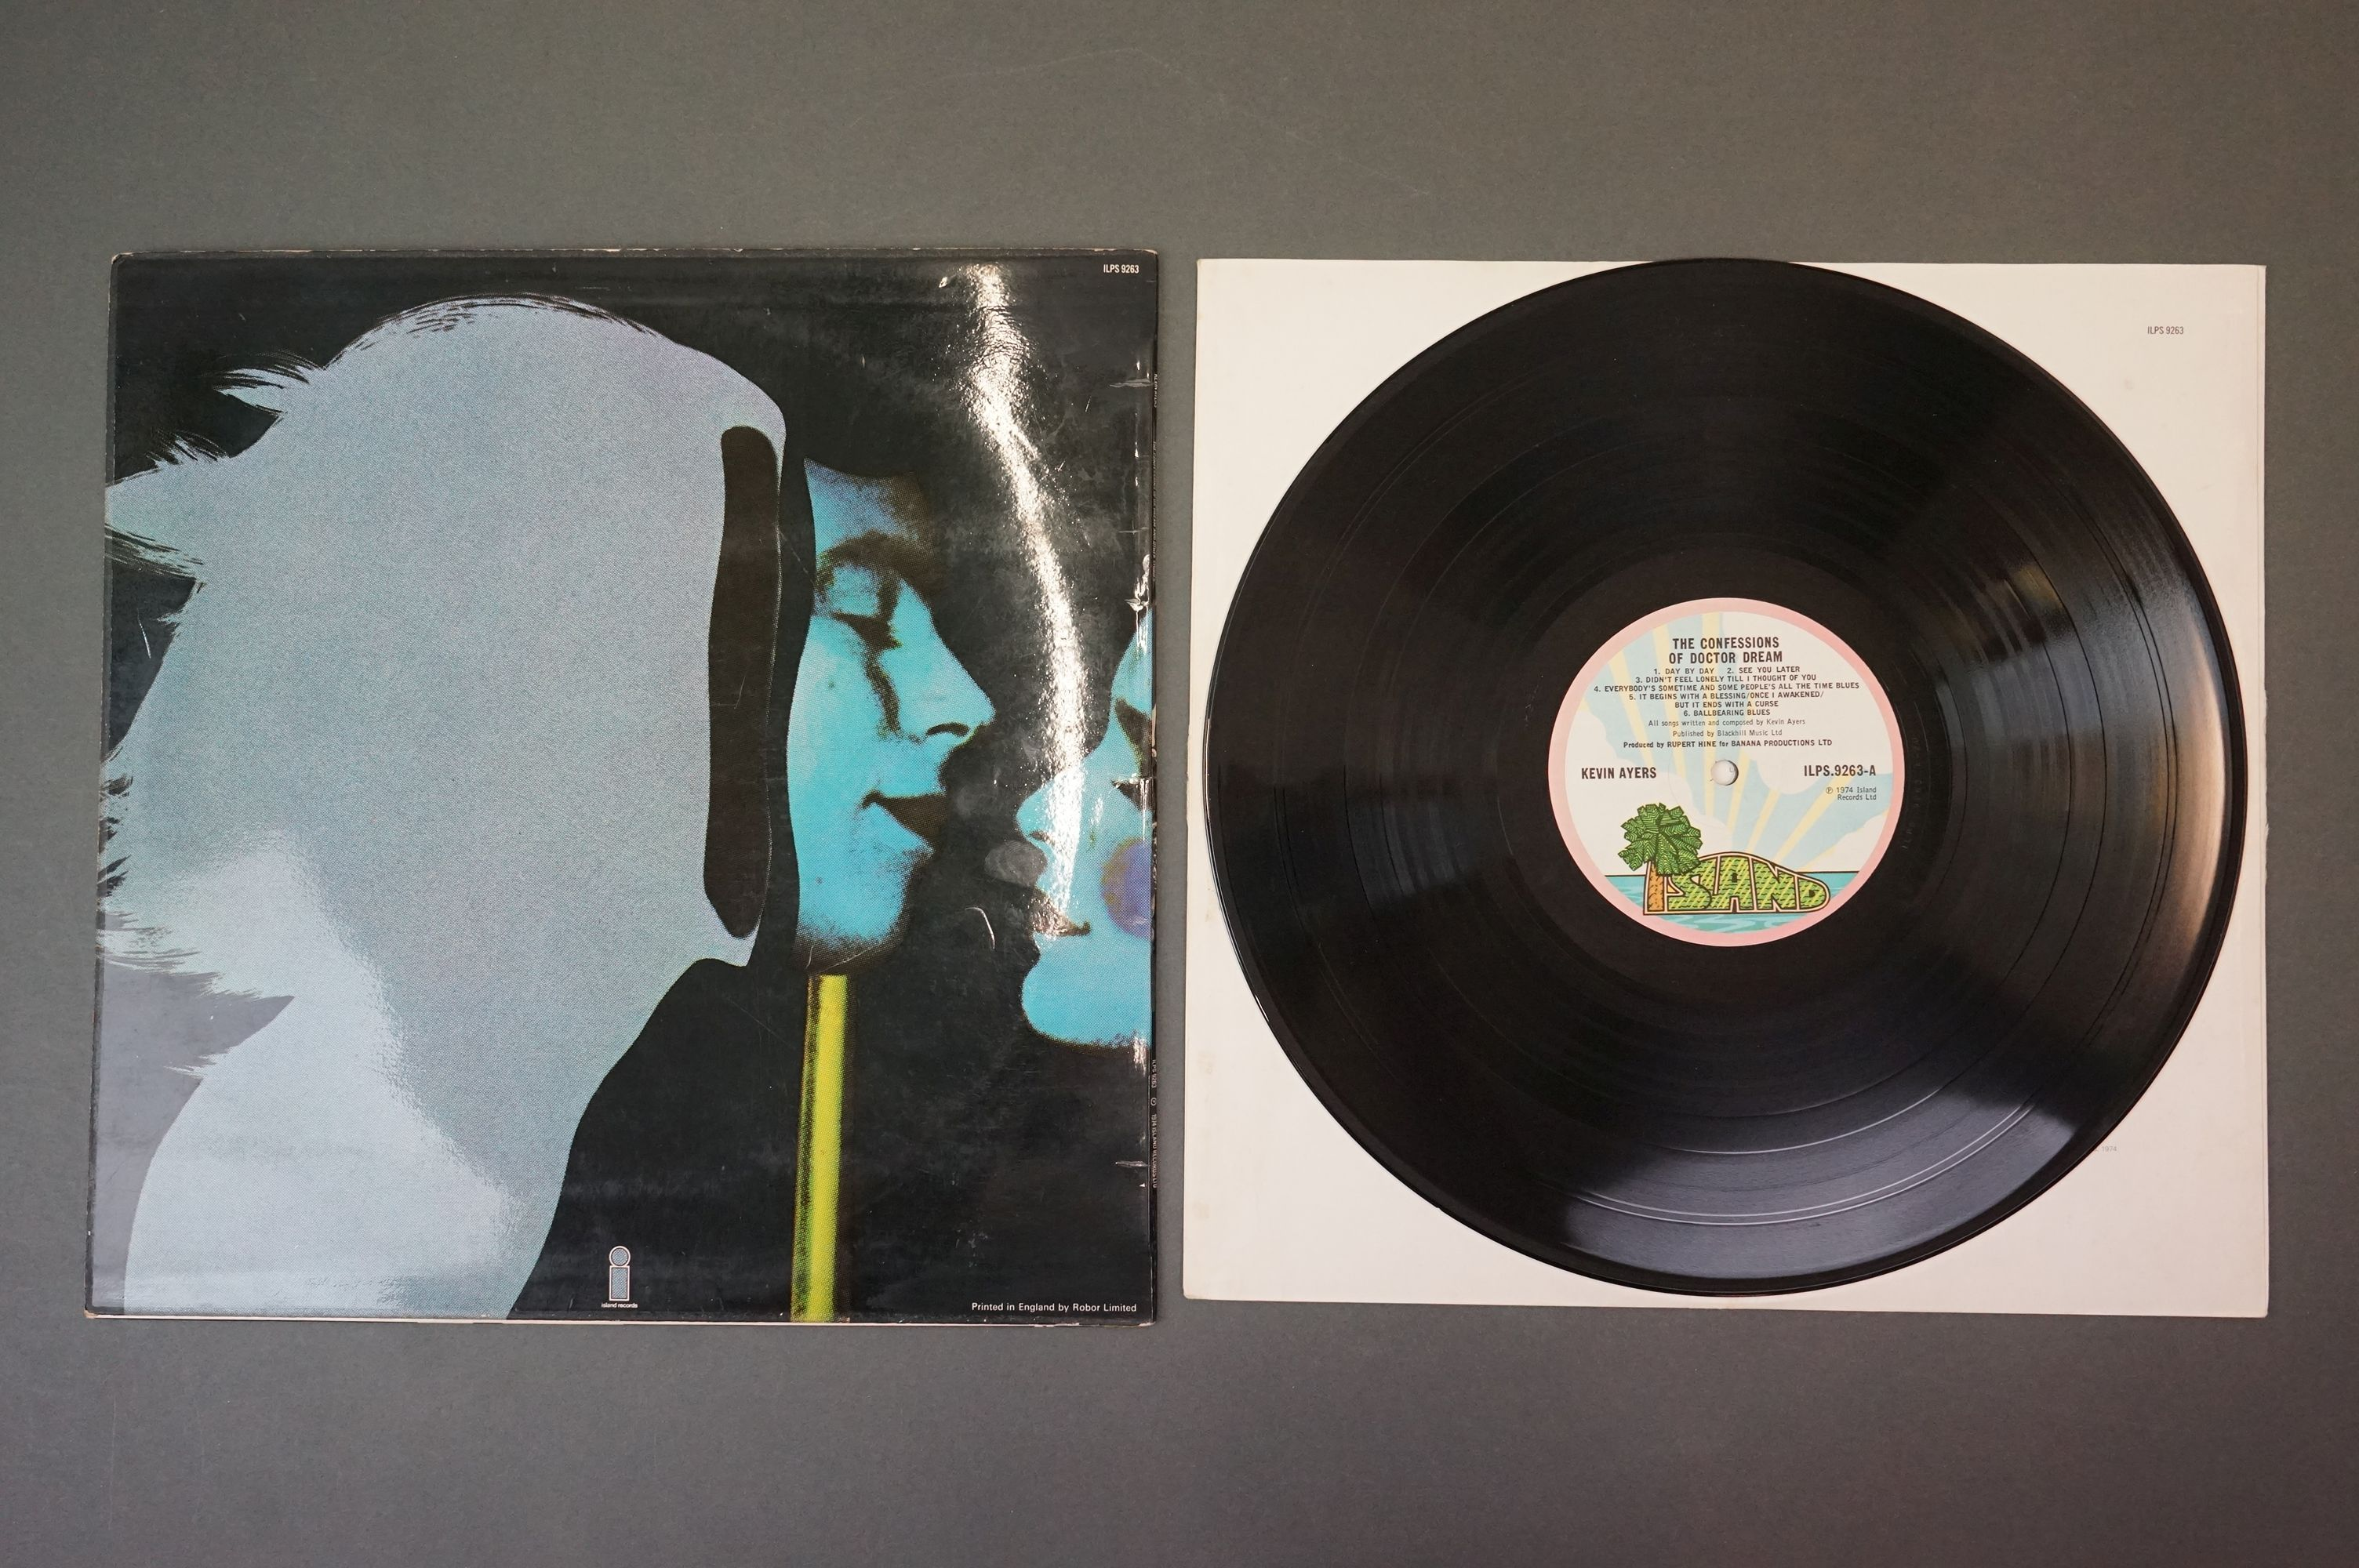 Vinyl - Kevin Ayers 1 LP The Confessions Of Dr Dream (ILPS 9263) lyric inner plus 7 inch singles - Image 3 of 5